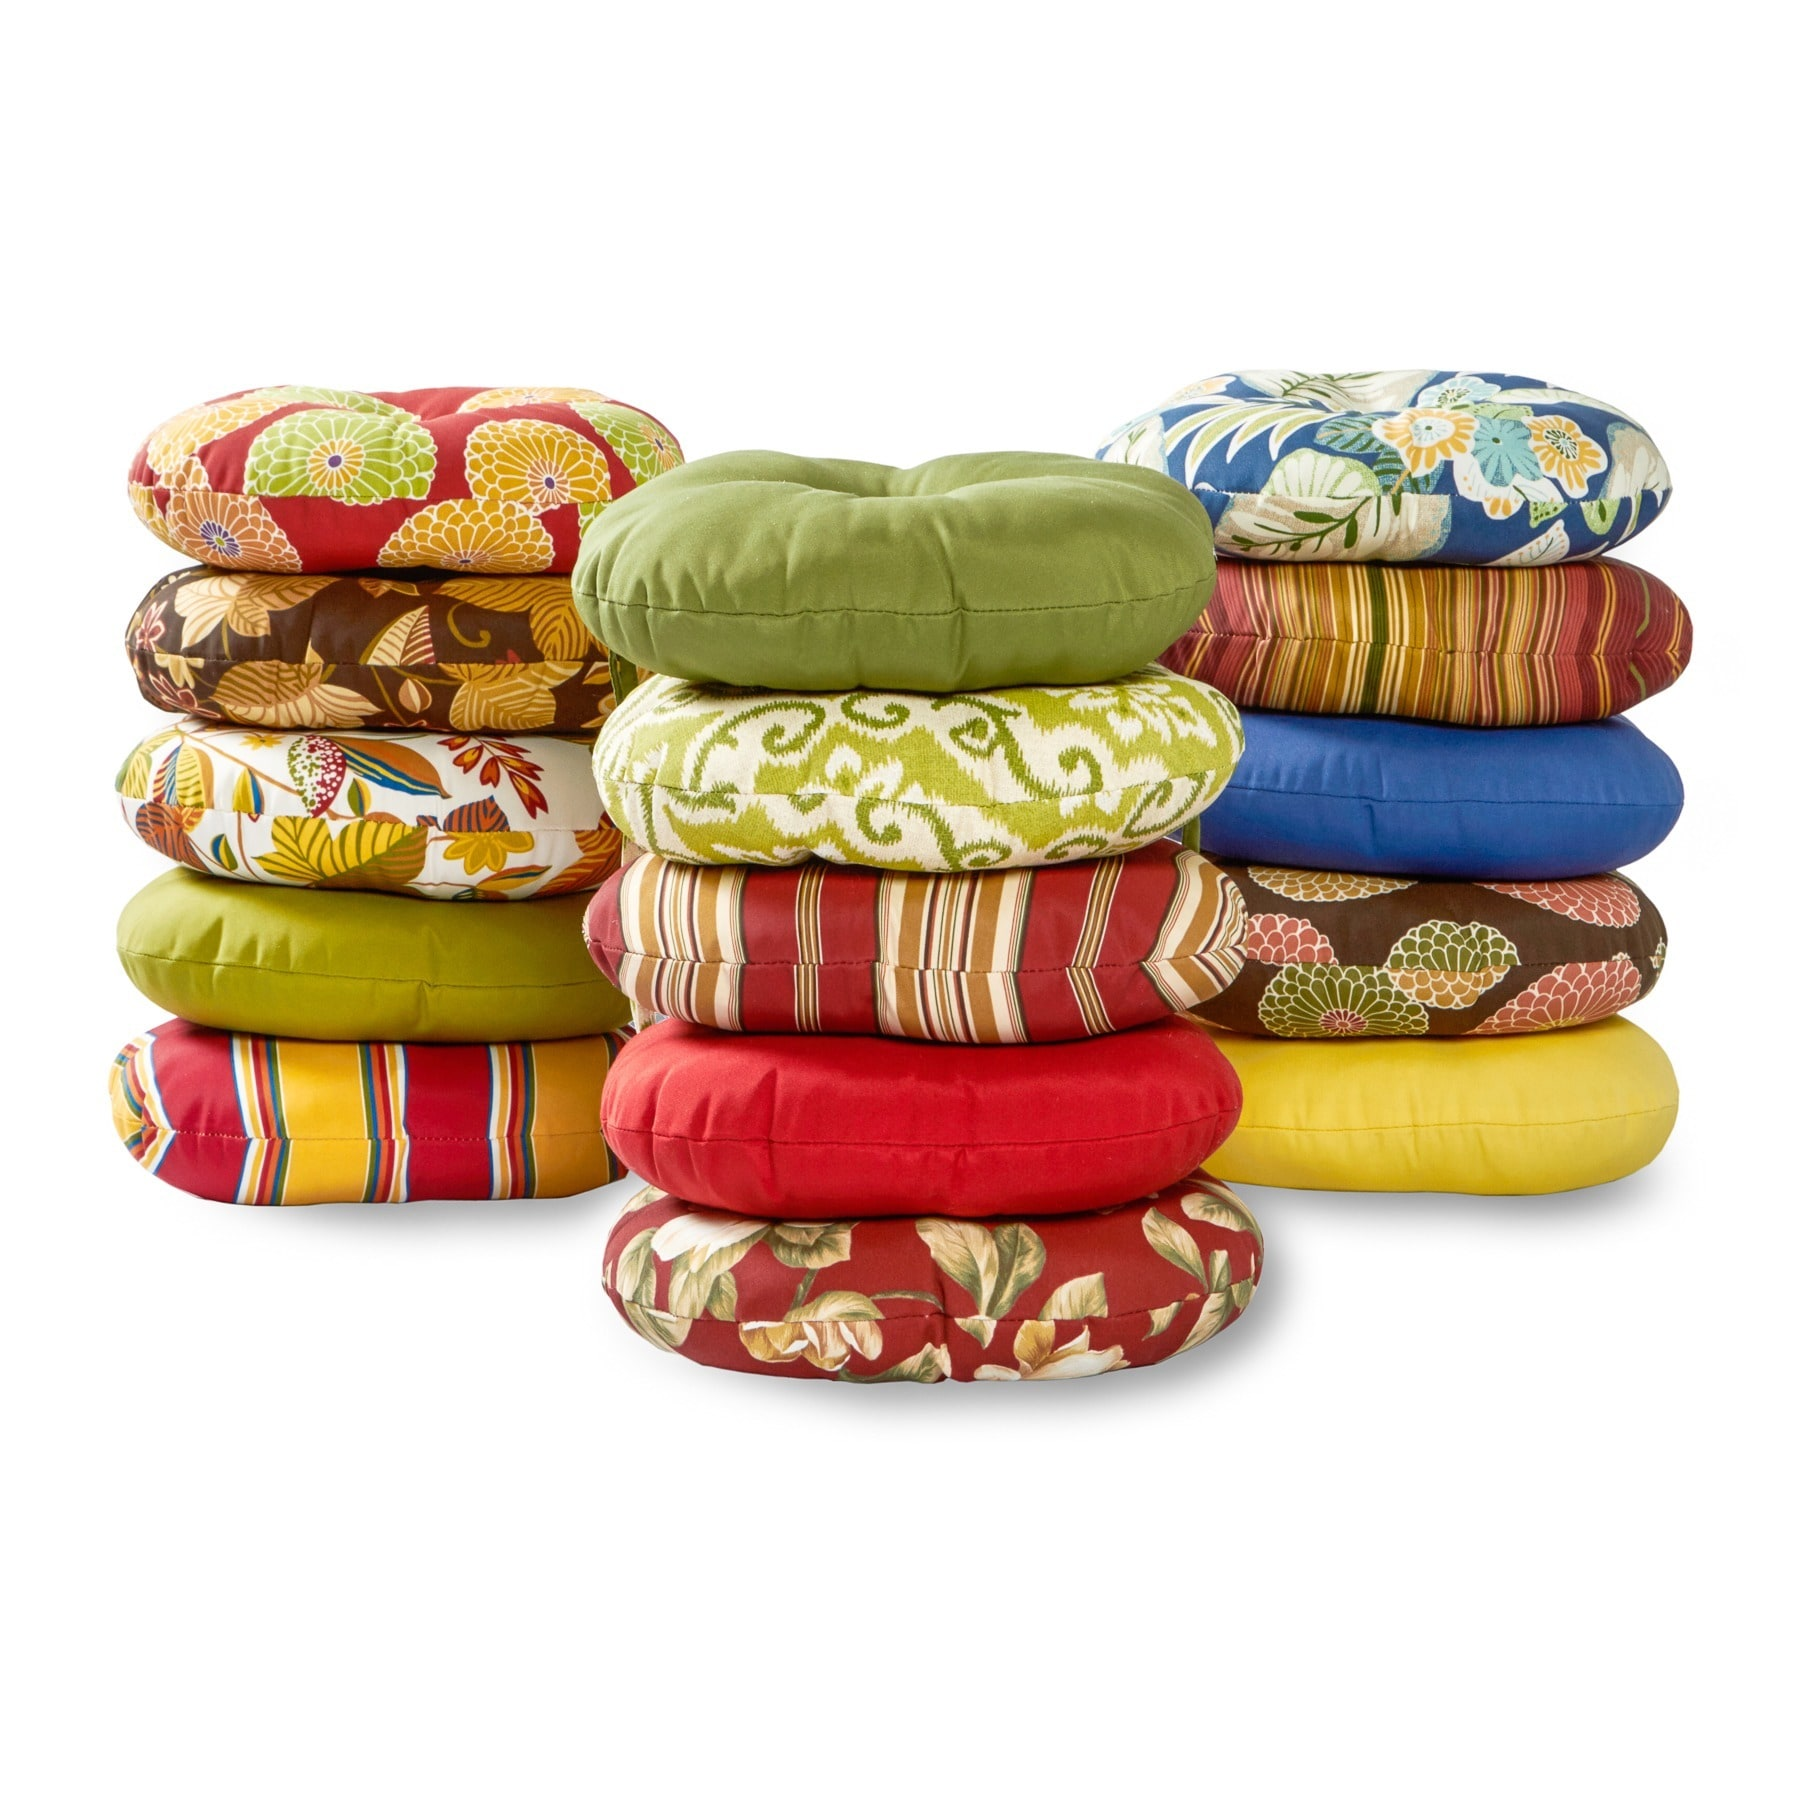 home goods dining chair cushions room table chairs buy outdoor and pillows online at overstock